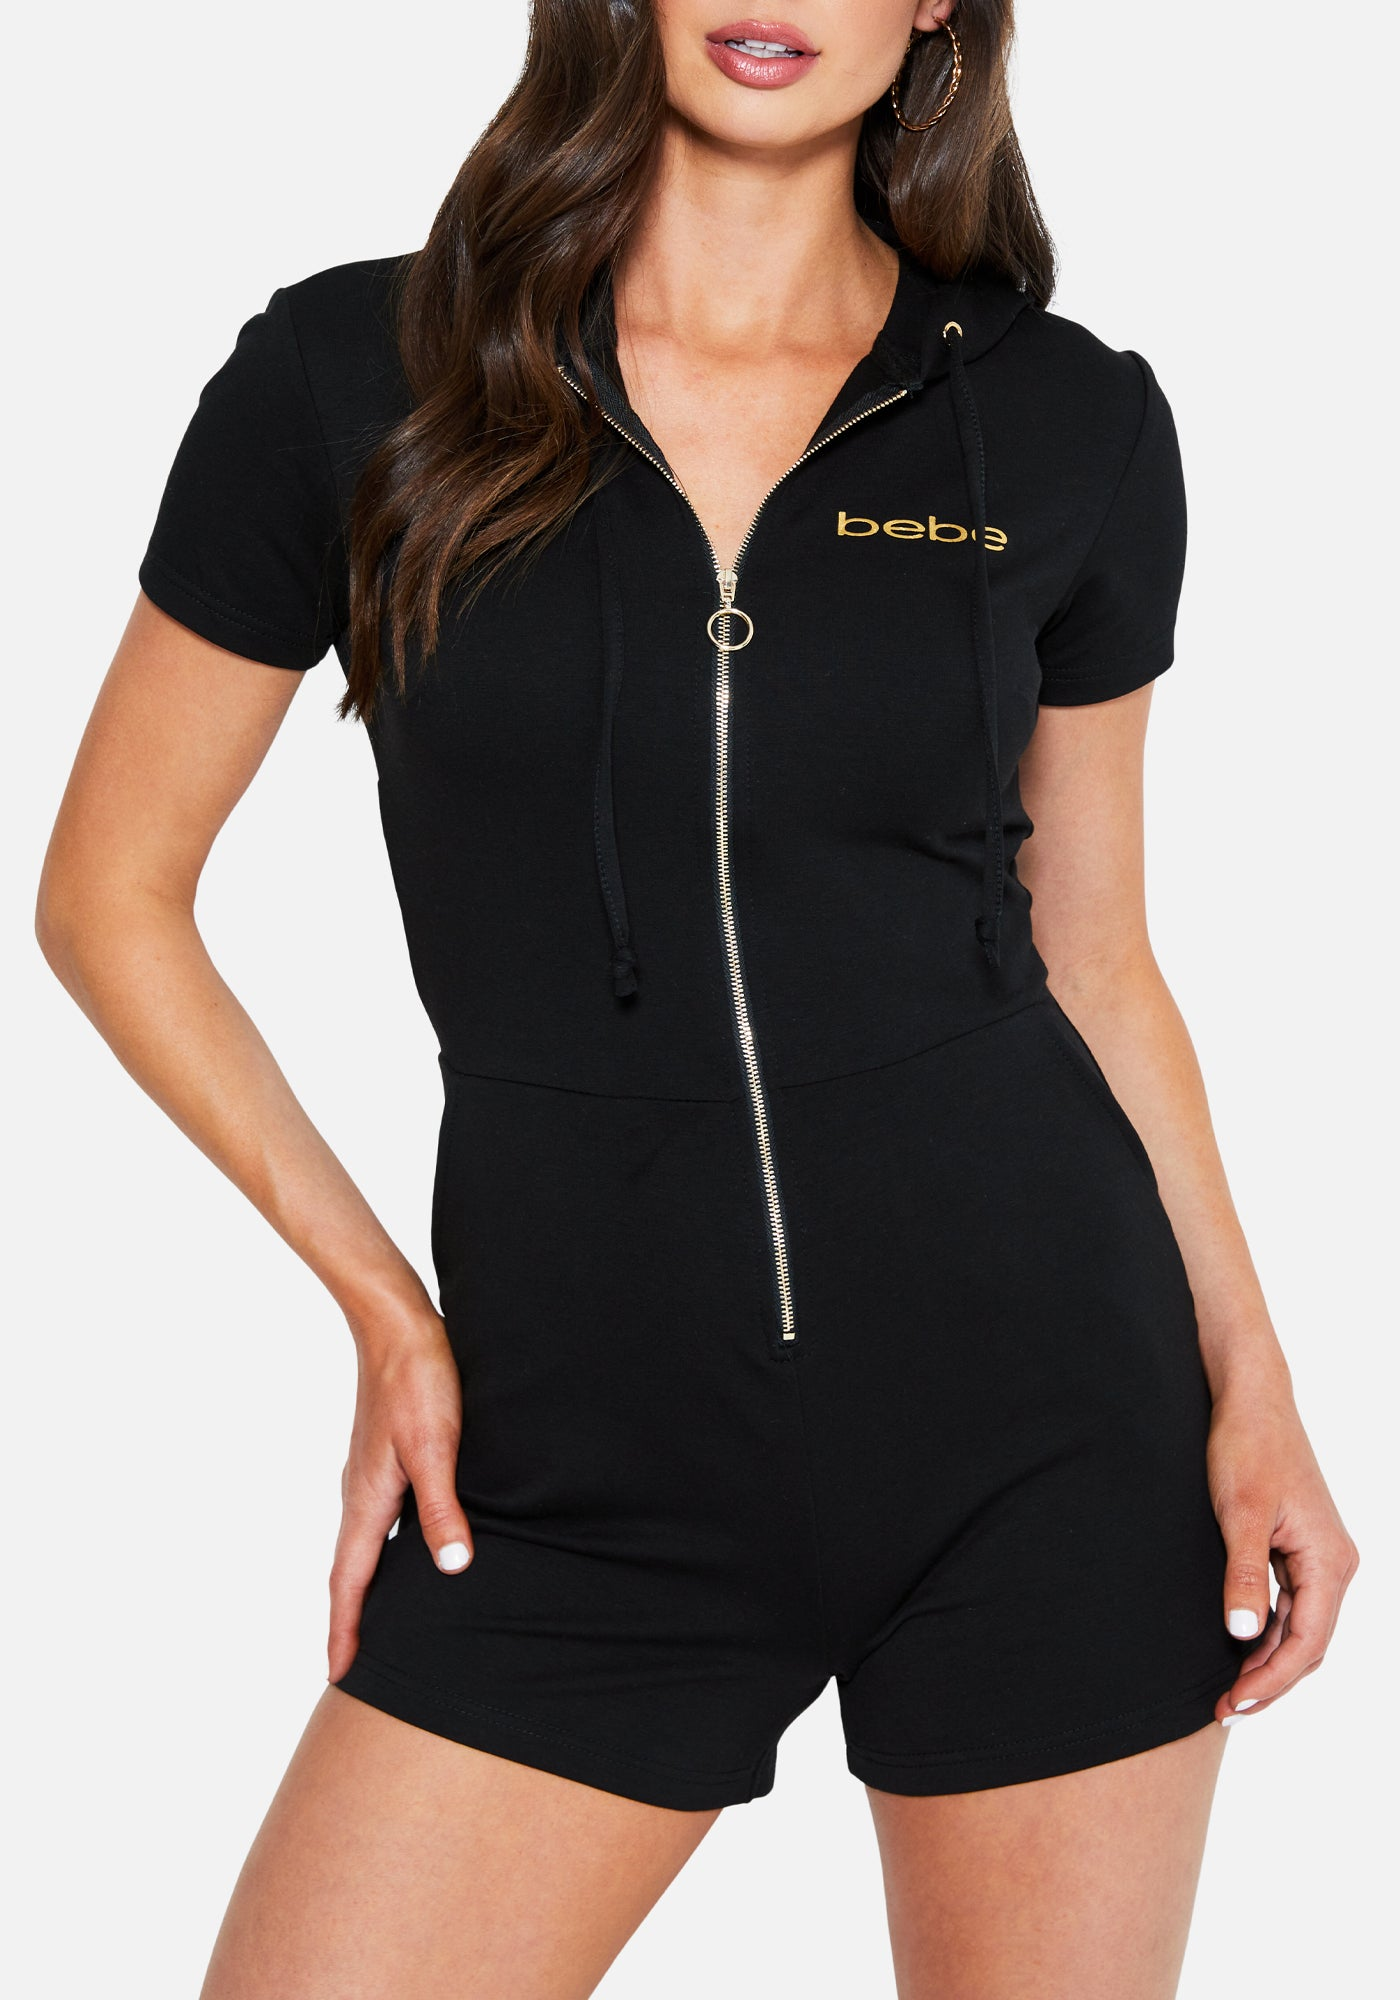 Women's Bebe Logo French Terry Romper, Size Small in BLACK Cotton/Spandex